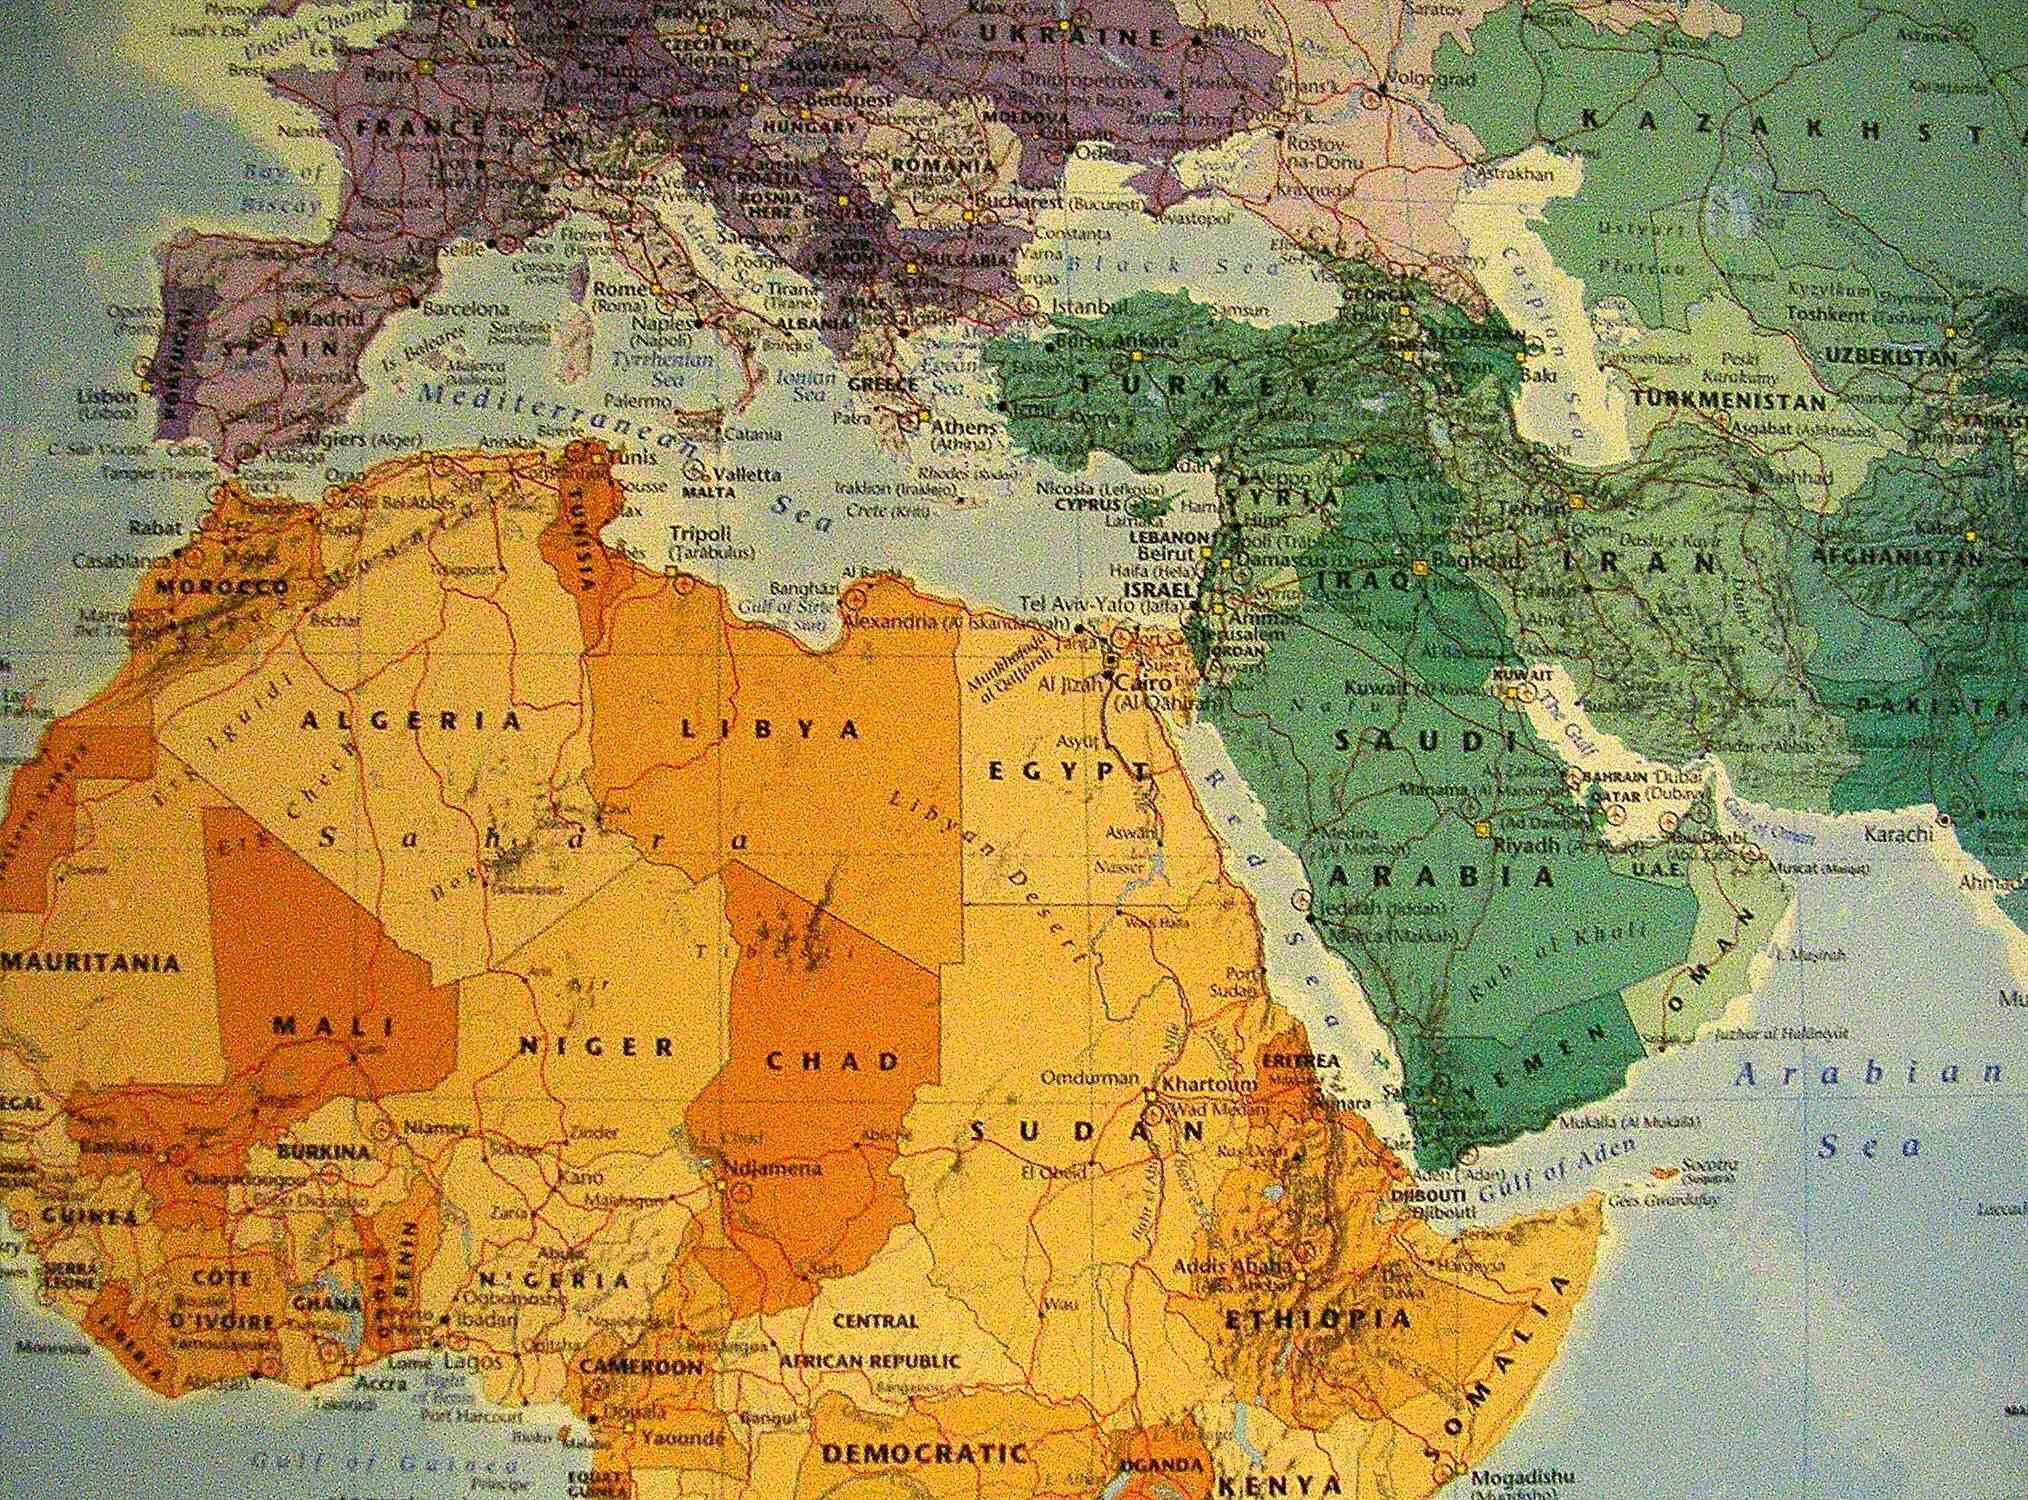 World map screensaver wallpaper 56 images 1920x1080 world map picture download sciox Images